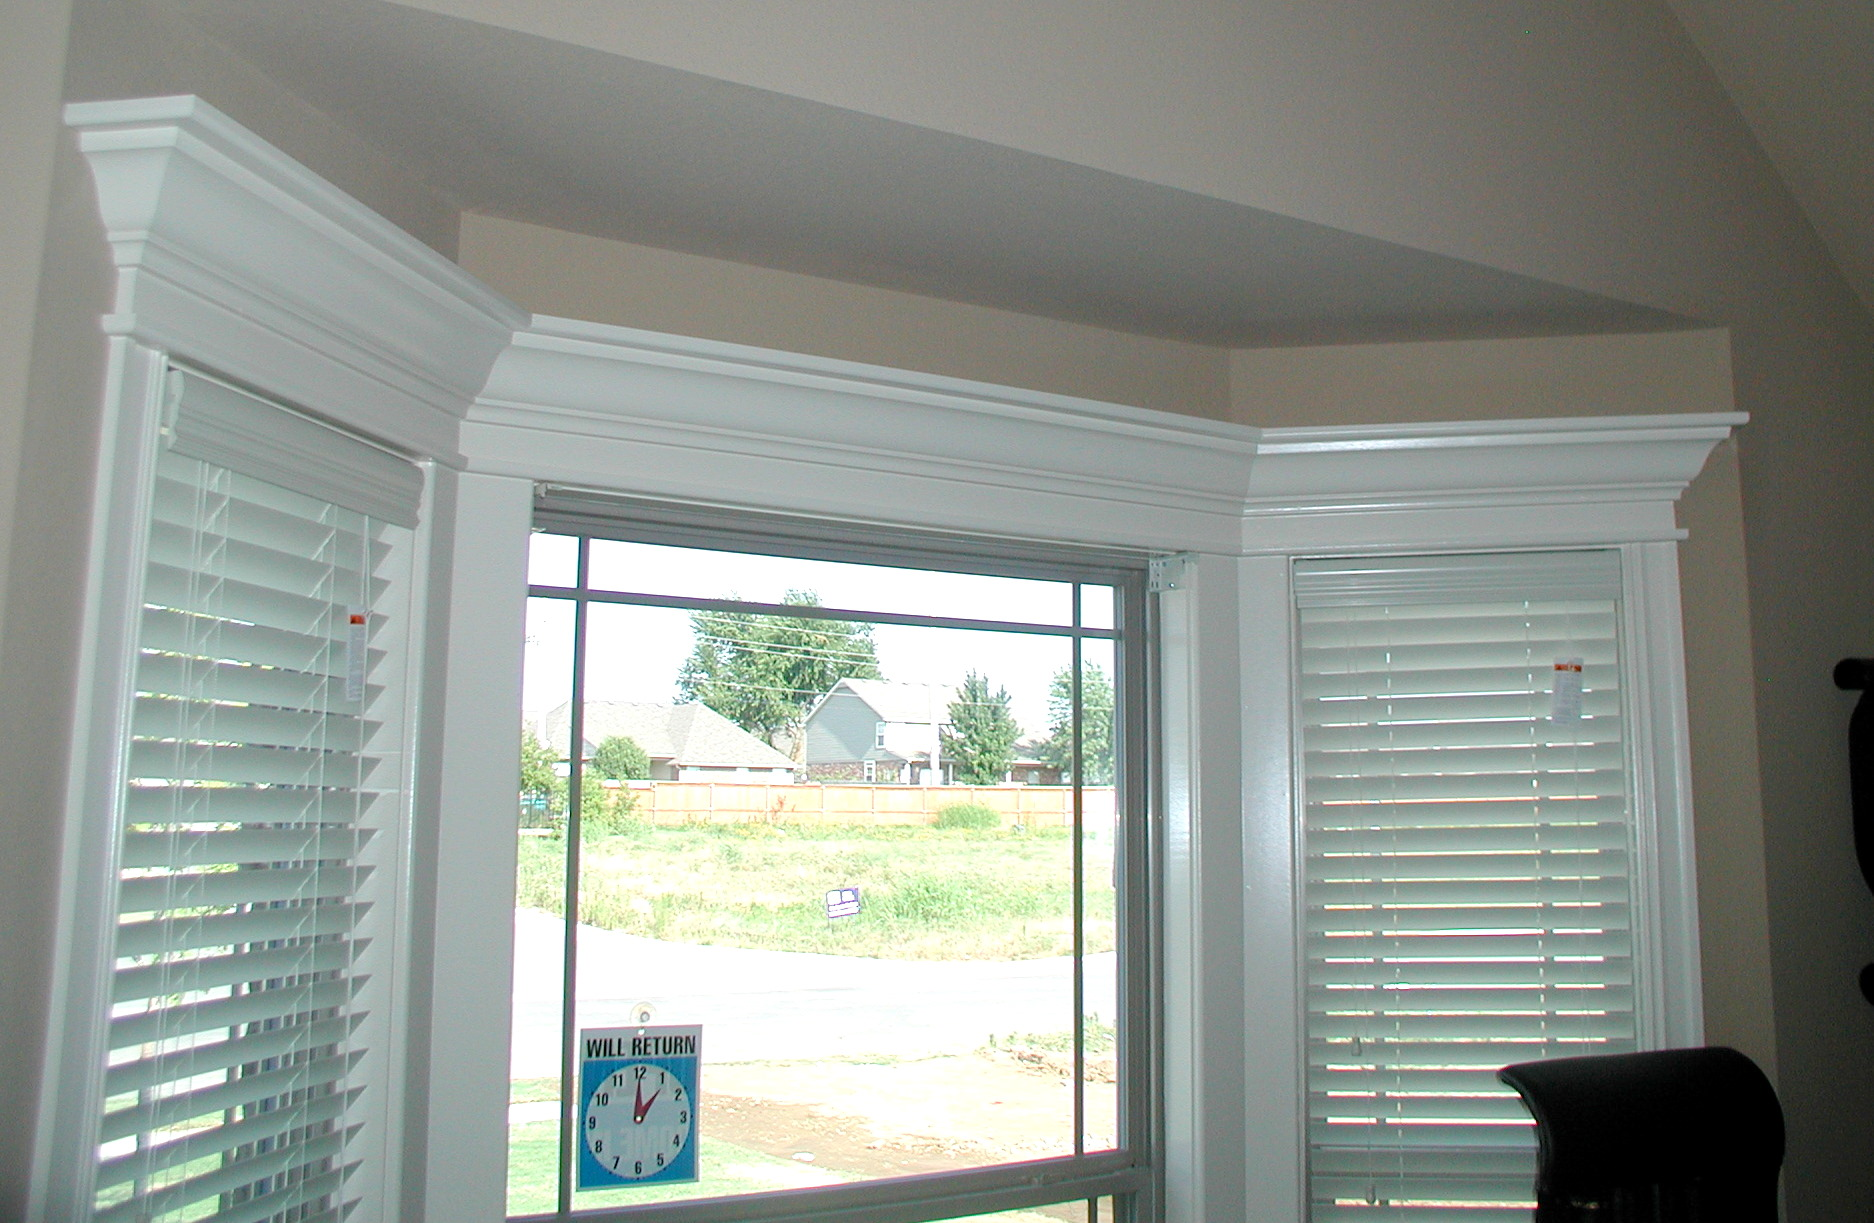 Garage door window blinds large and beautiful photos for The door and the window